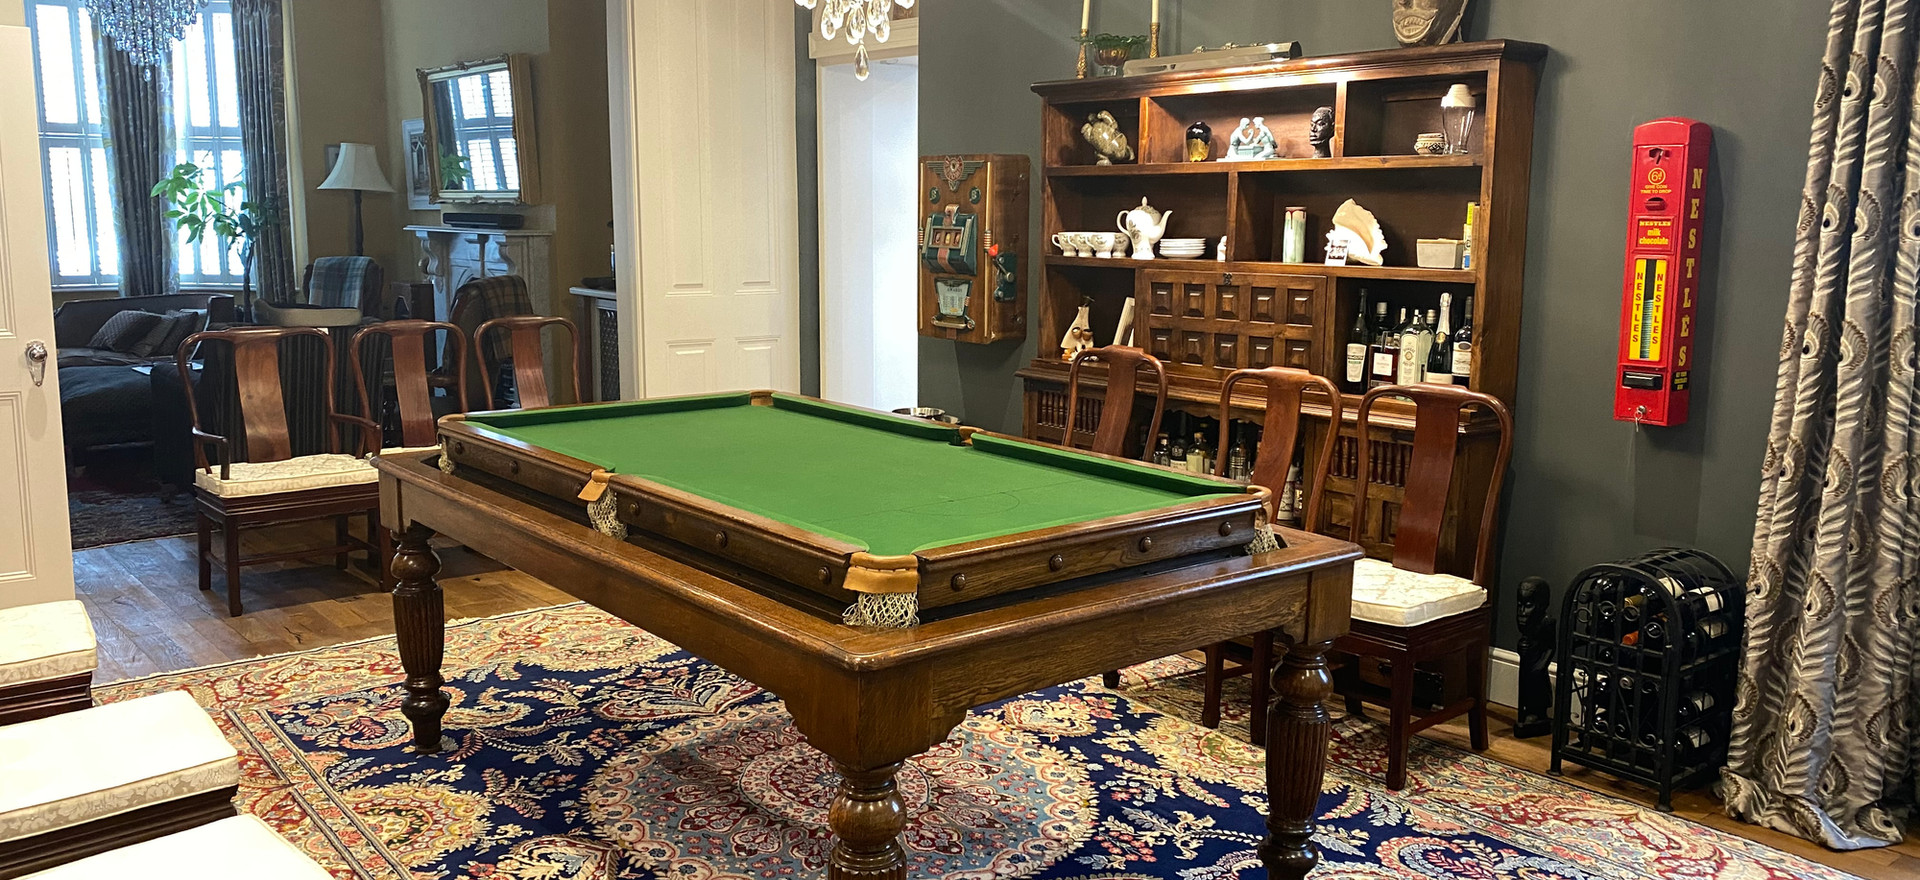 Snooker | Billiard | Pool Table | Rollover Convertible Dining Table